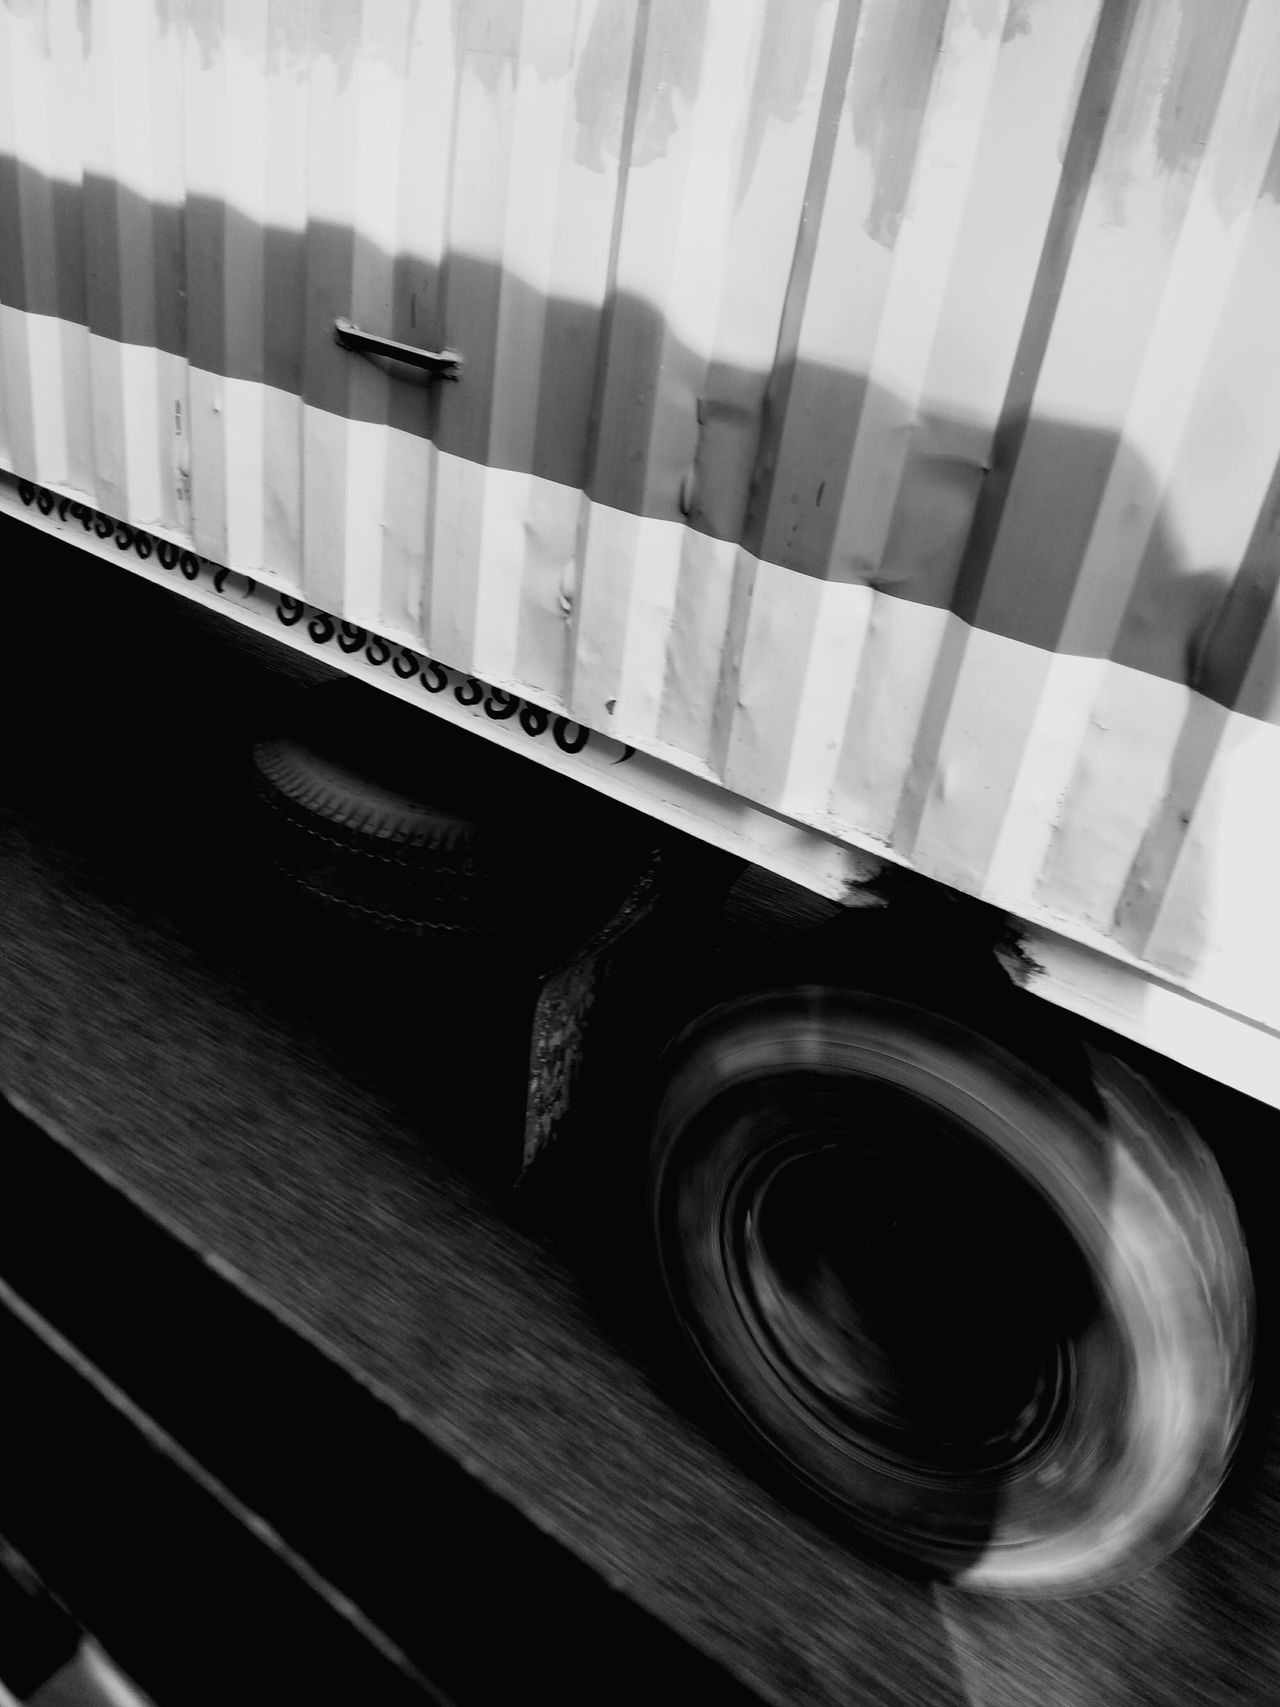 Busrides Truckerslife Trucks🚛🚒🚚⚠ Transportation Surrounded By Beauty  Sky Bus PhonePhotography Summer2017 Travel Photography Blackandwhite EyeEmNewHere Art Is Everywhere The Great Outdoors - 2017 EyeEm Awards The Photojournalist - 2017 EyeEm Awards The Street Photographer - 2017 EyeEm Awards The Architect - 2017 EyeEm Awards The Portraitist - 2017 EyeEm Awards